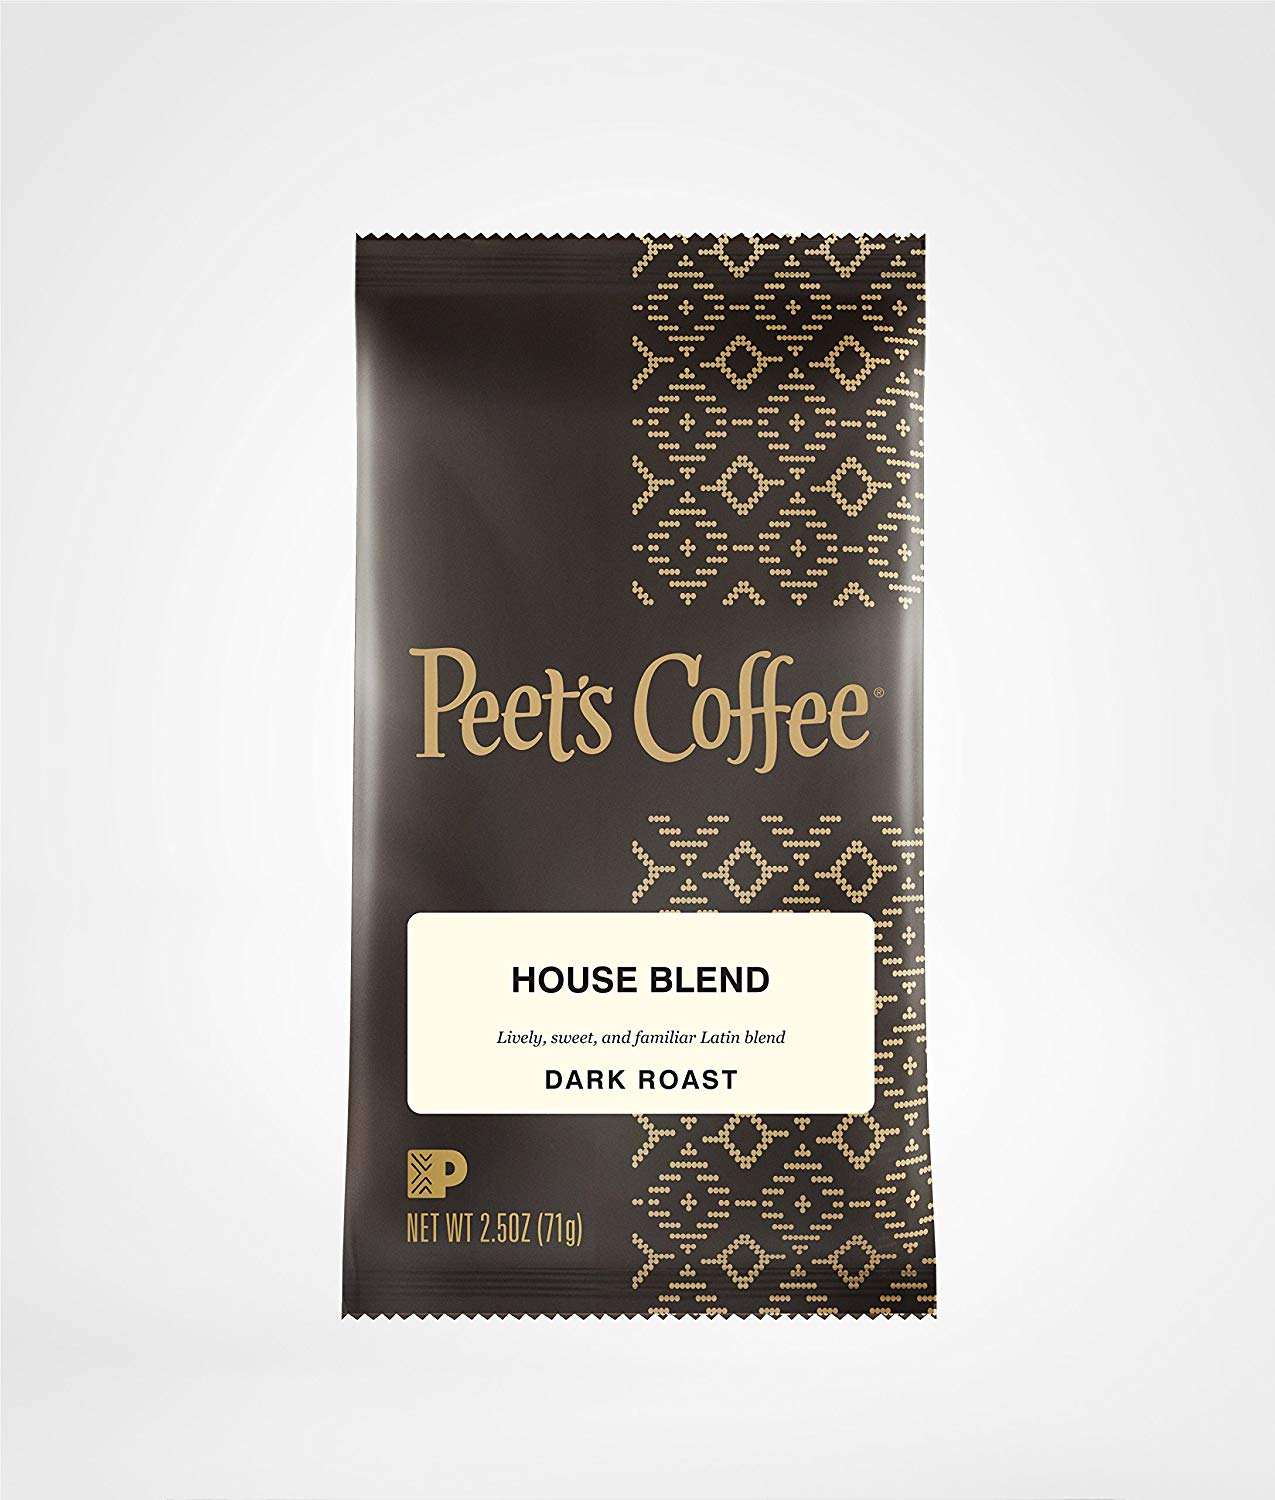 Peet's Coffee, House Blend, Ground Coffee, Dark Roast, 2.5 oz. Fractional Packs (Pack of 18), Bright, Lively, and Balanced Dark Roast Blend of Latin American Coffees, Deep Roasted